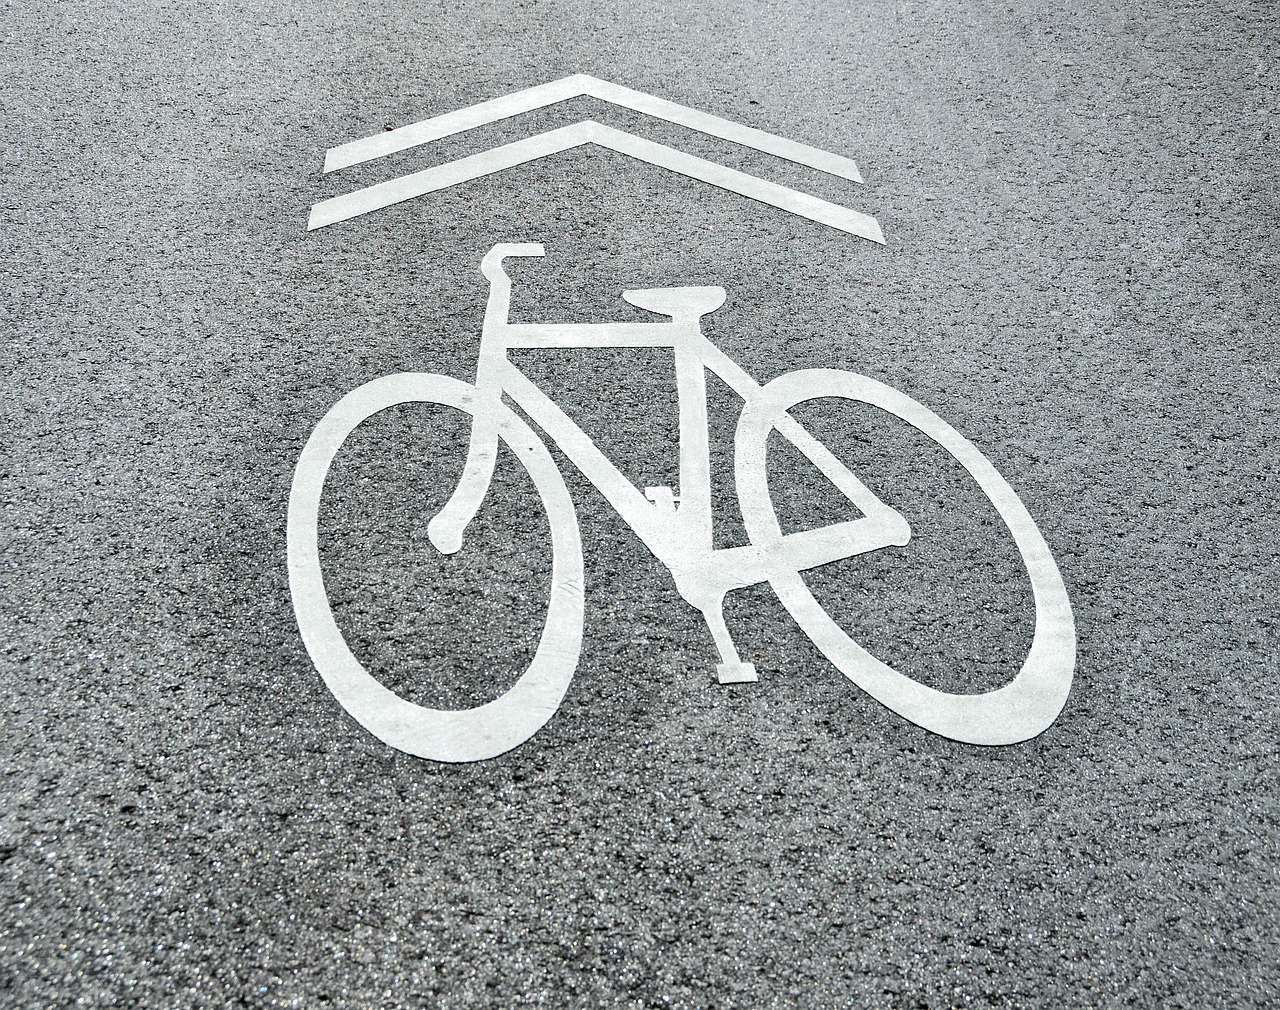 """In Fairfax County we don't have bridges to nowhere but we do have bike lanes to nowhere. Not just to nowhere, but for no one, it seems. After the program's initiation in 2006, our Democrat-dominated Board of Supervisors decided in 2010 to greatly increase the number of bike lanes through its """"first bicycle master plan."""""""